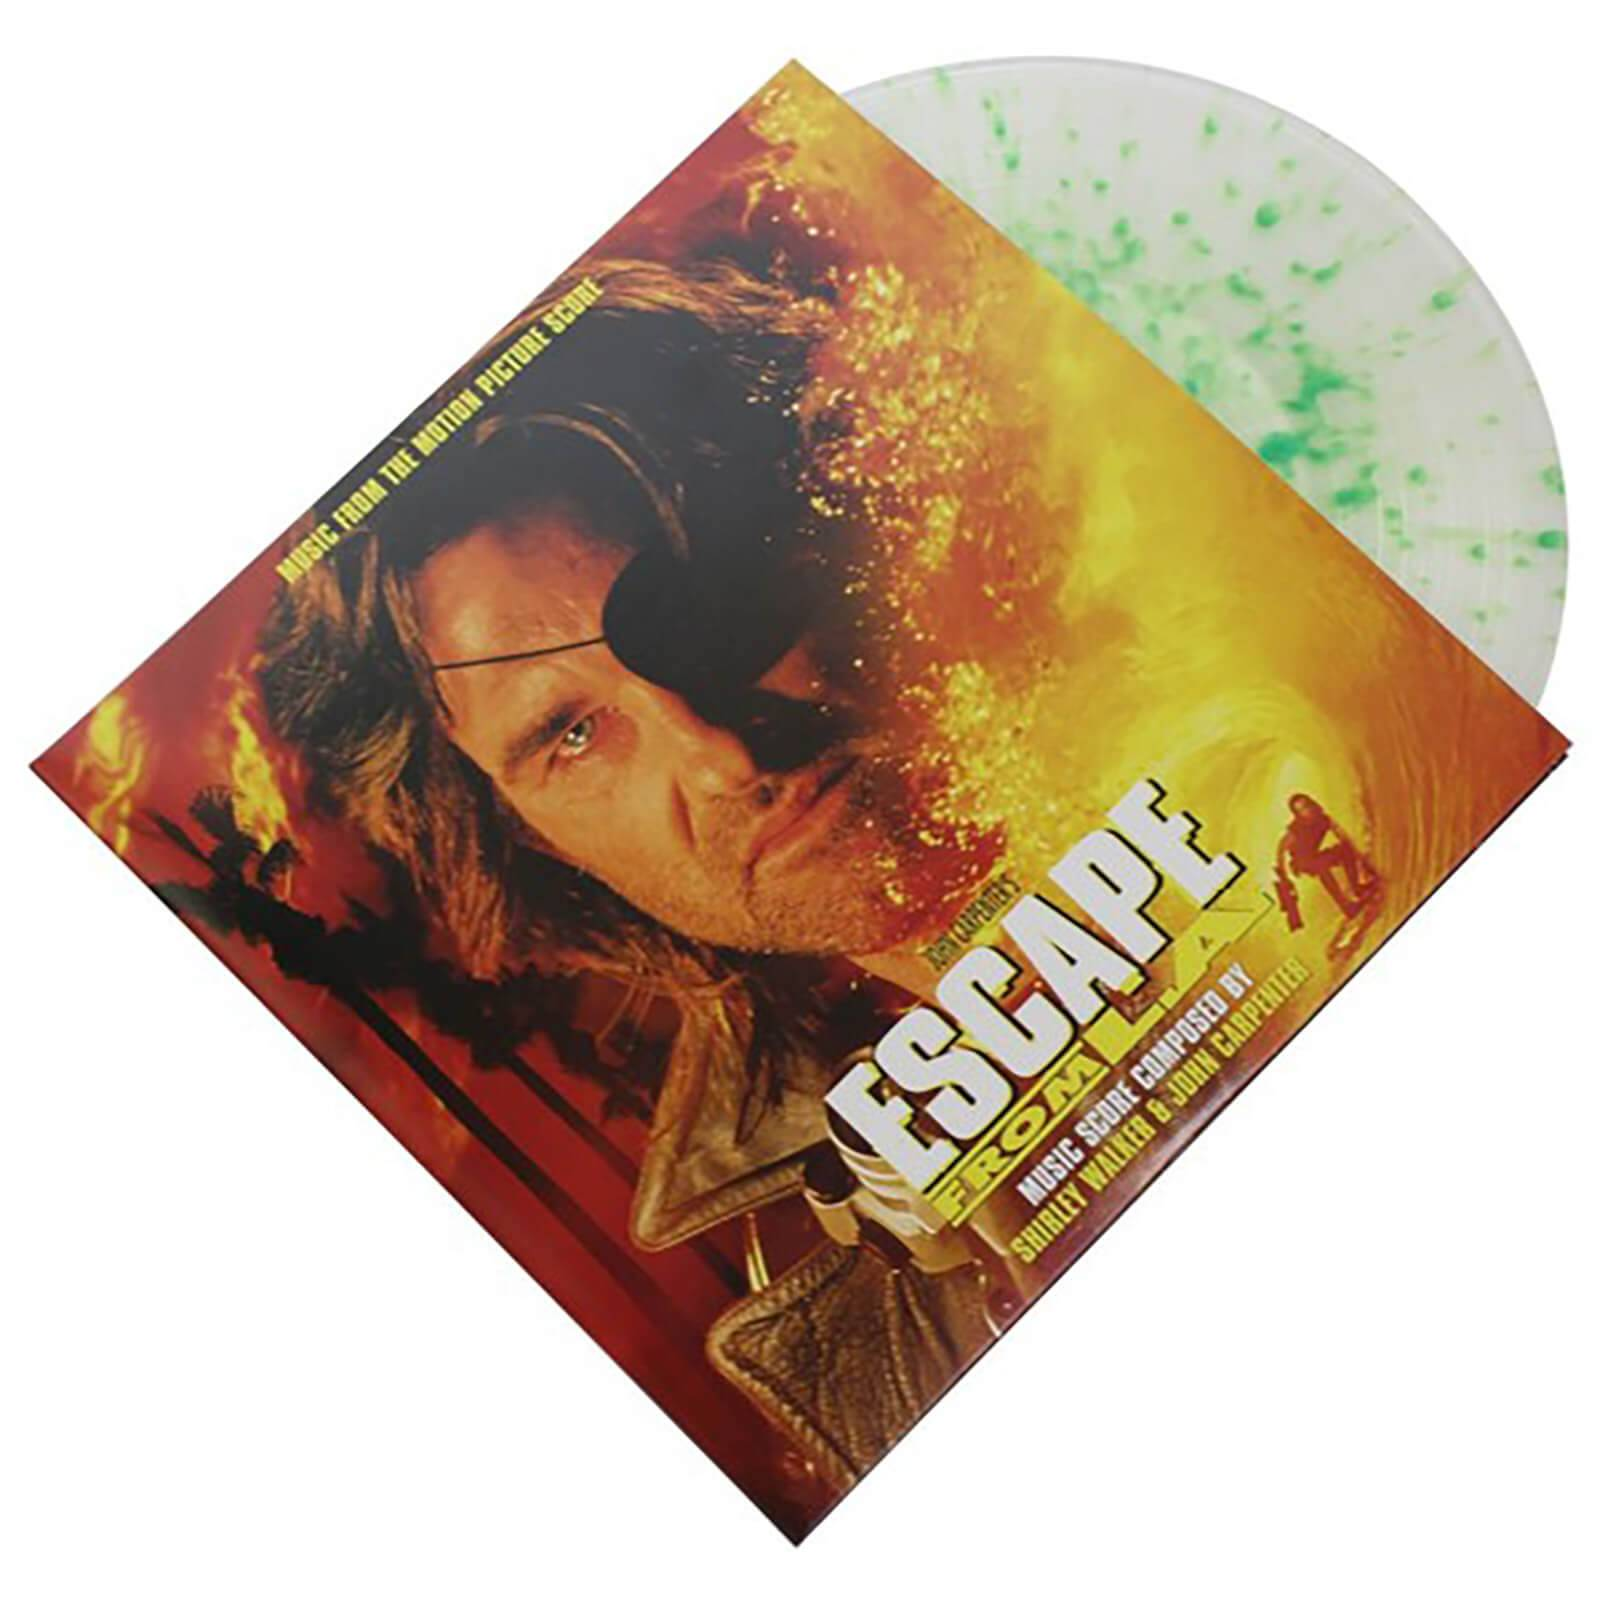 Real Gone Music Shirley Walker & John Carpenter: Escape from L.A. - Music from the Motion Picture Score (Limited Test Tube Clear with Plutoxin Virus Green Splatter Vinyl Edition) 2xLP